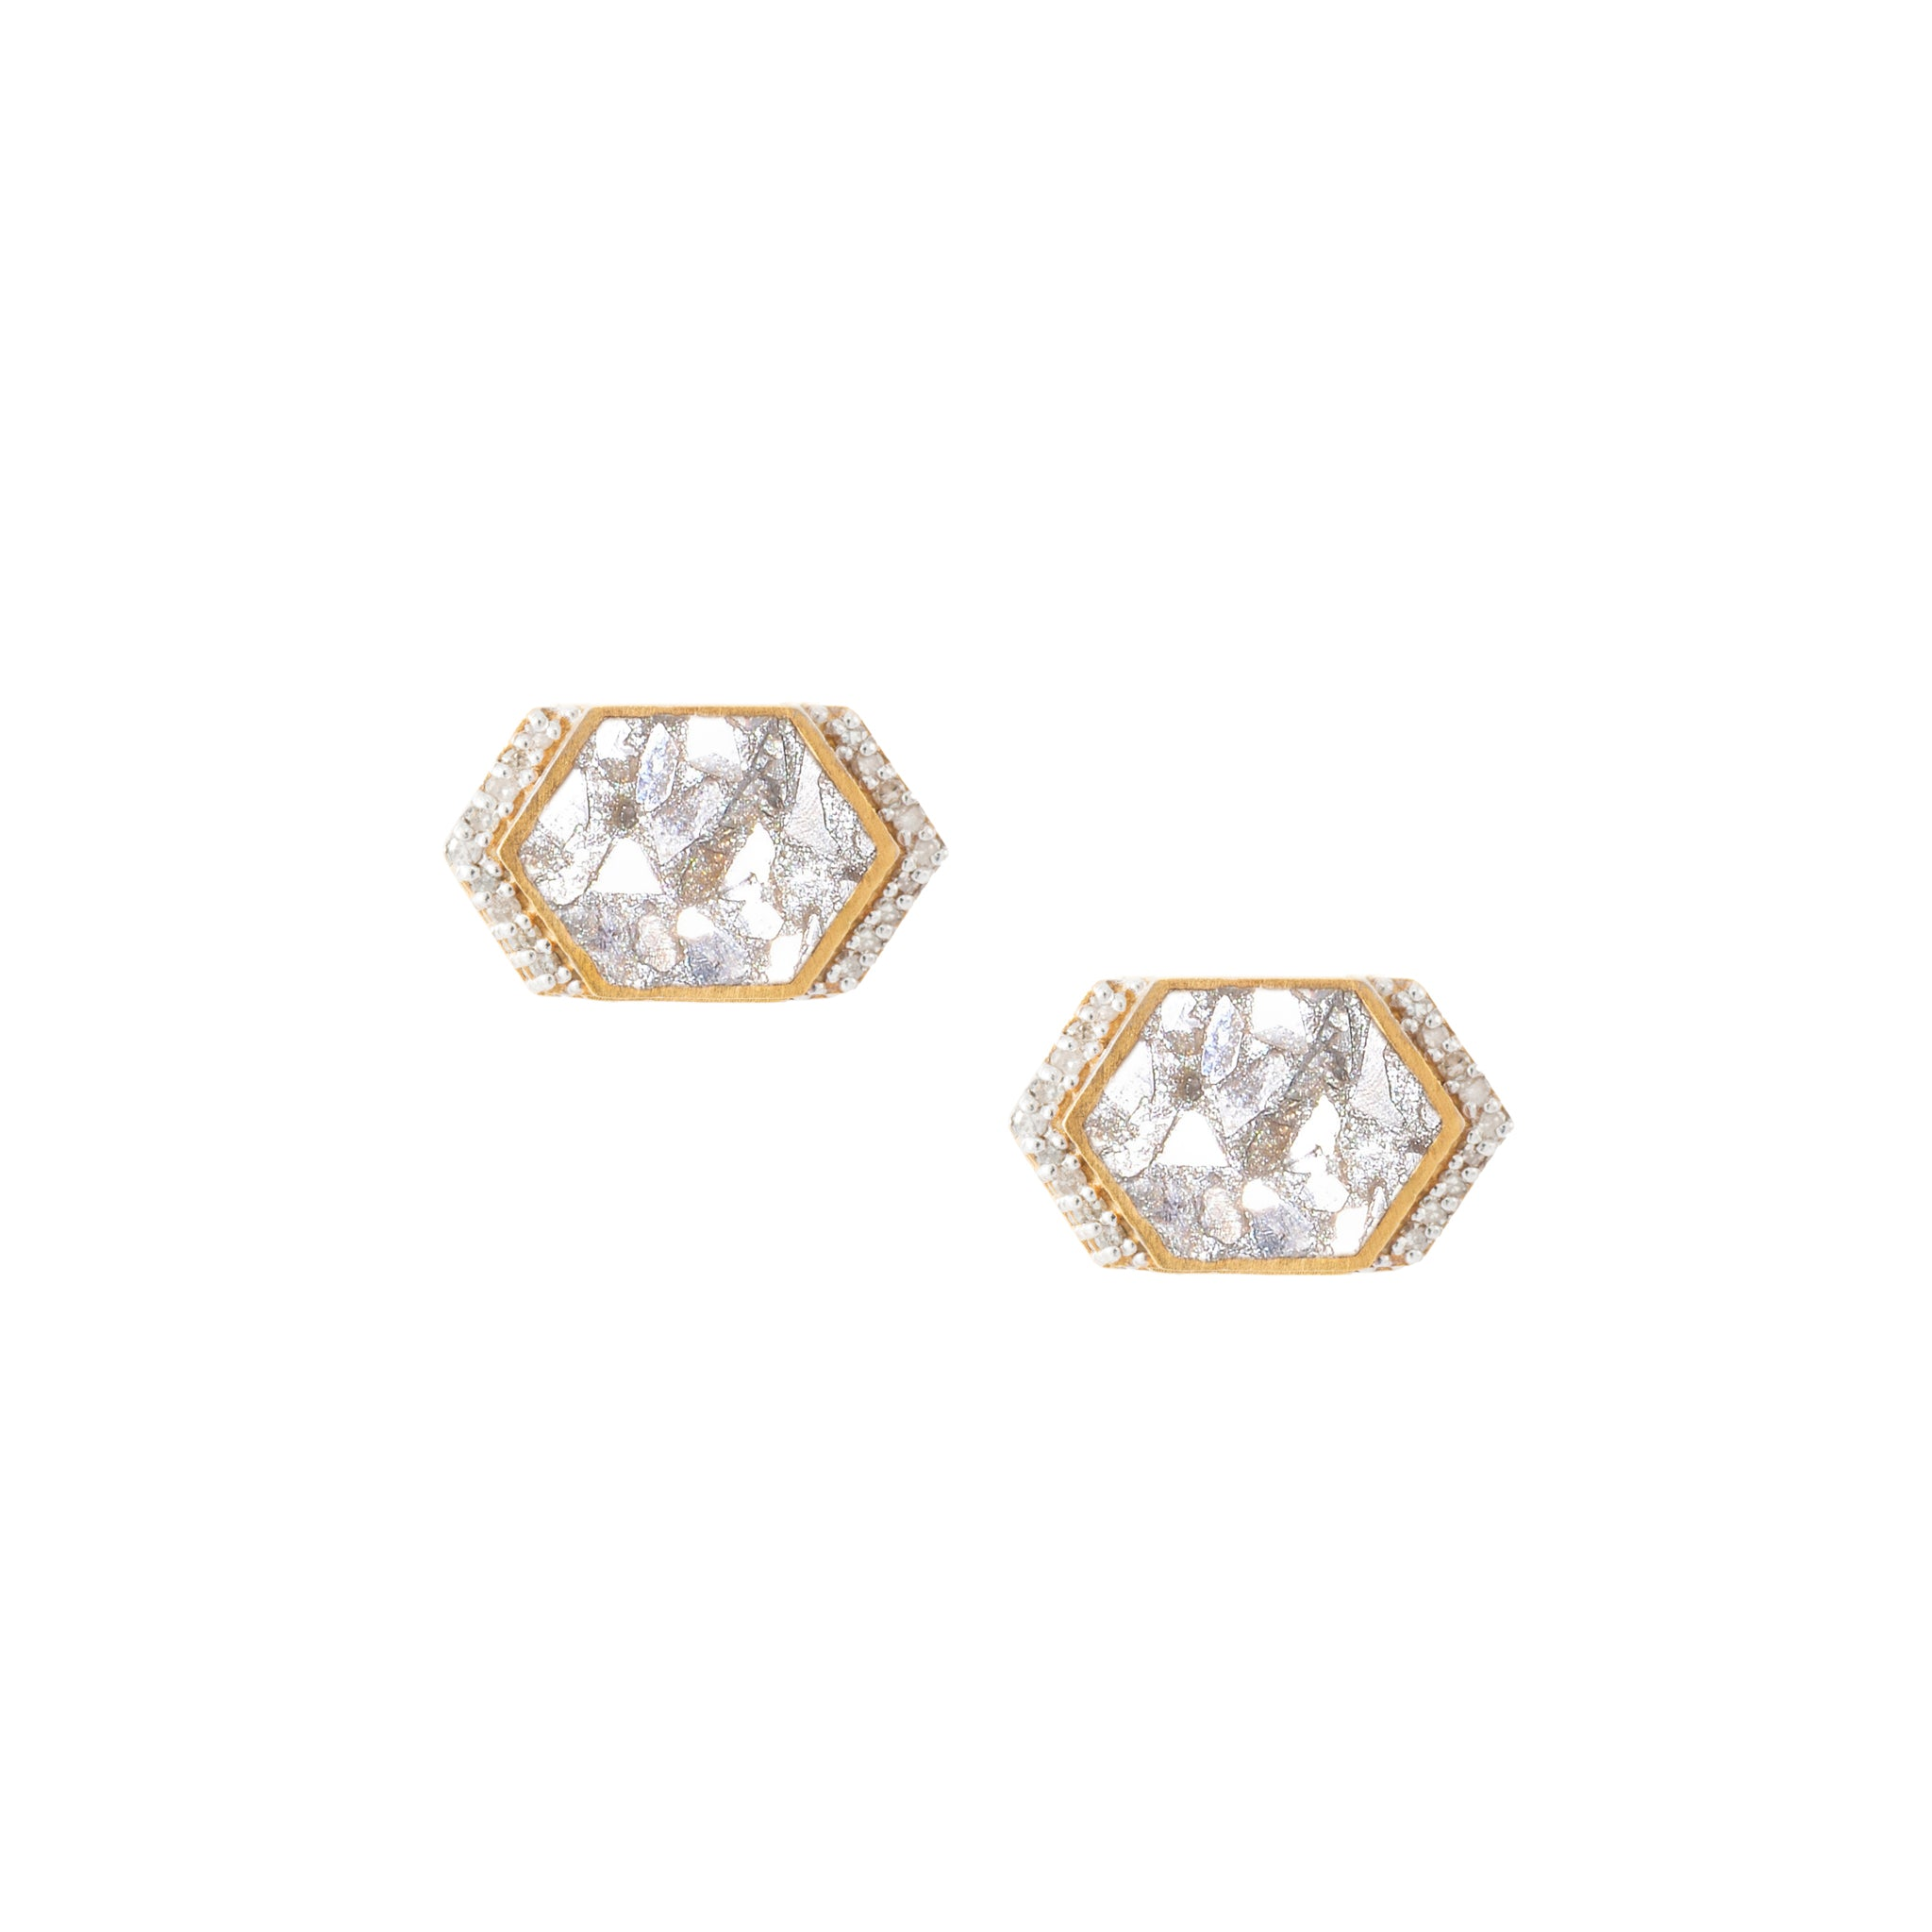 18k gold diamond studs